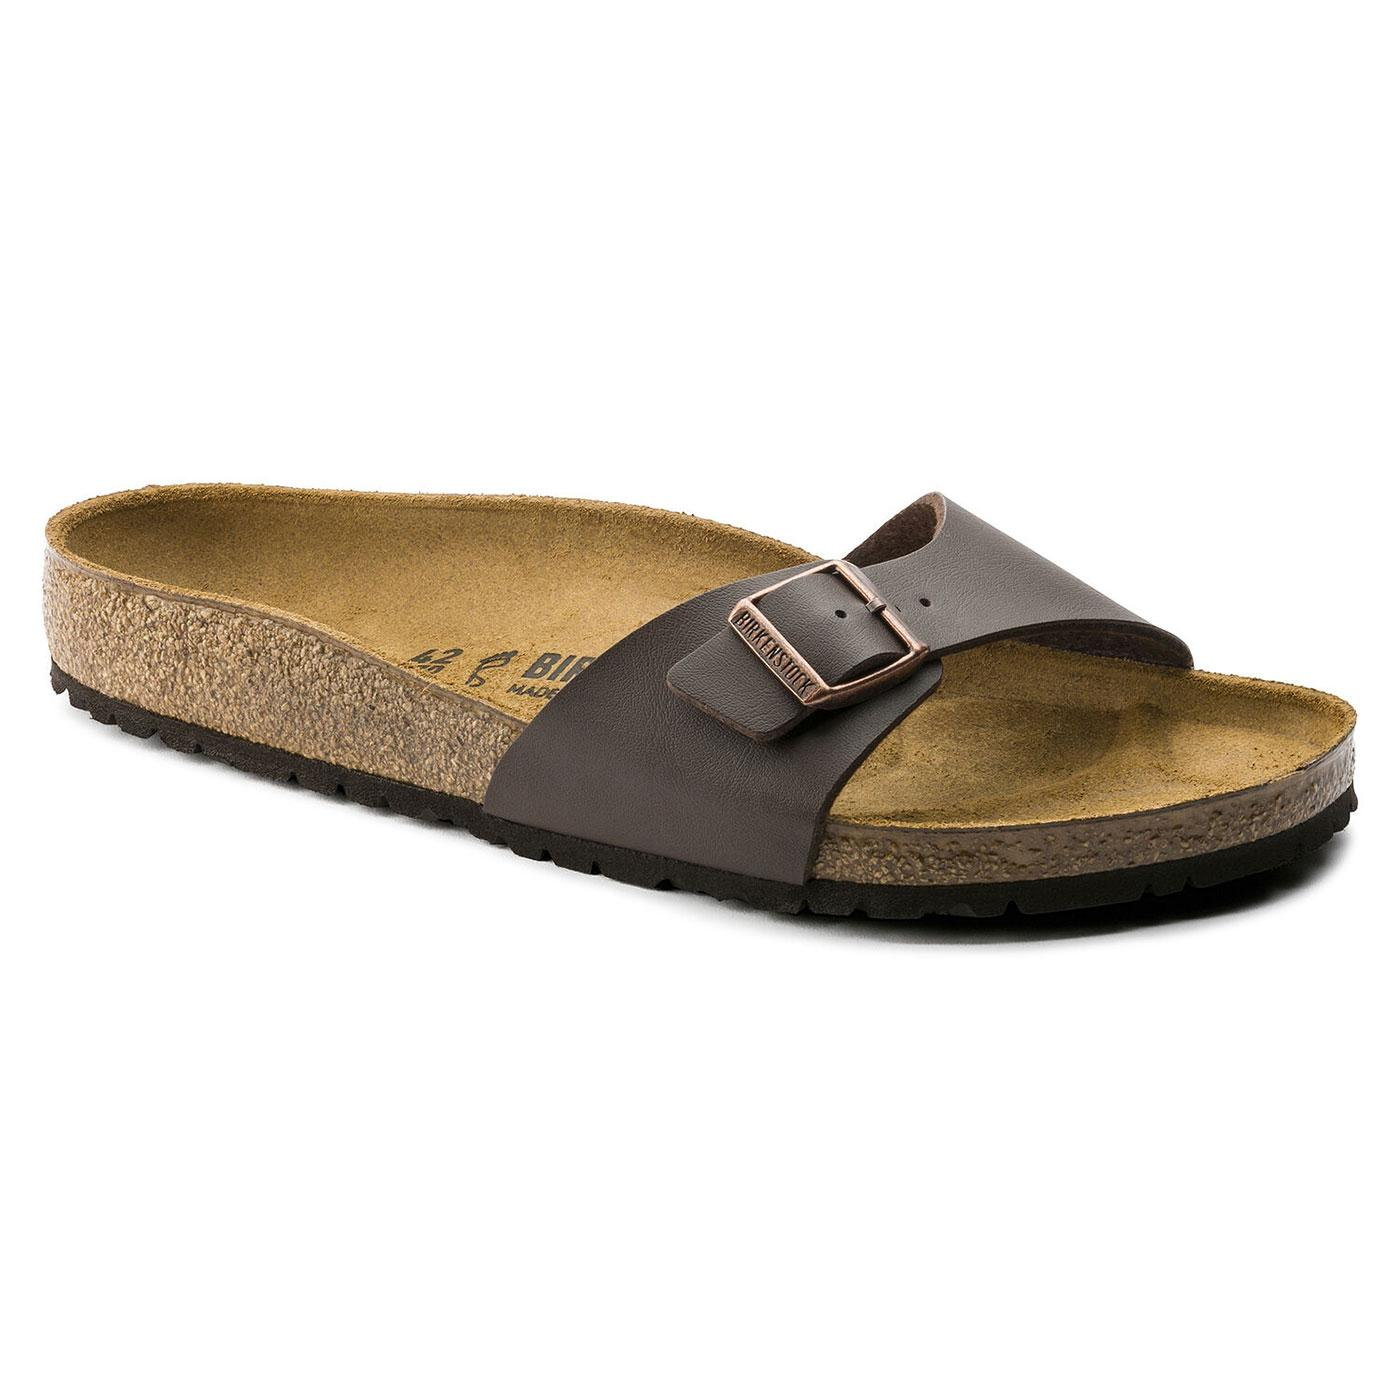 Madrid BF BIRKENSTOCK Women's Retro Sandals DB